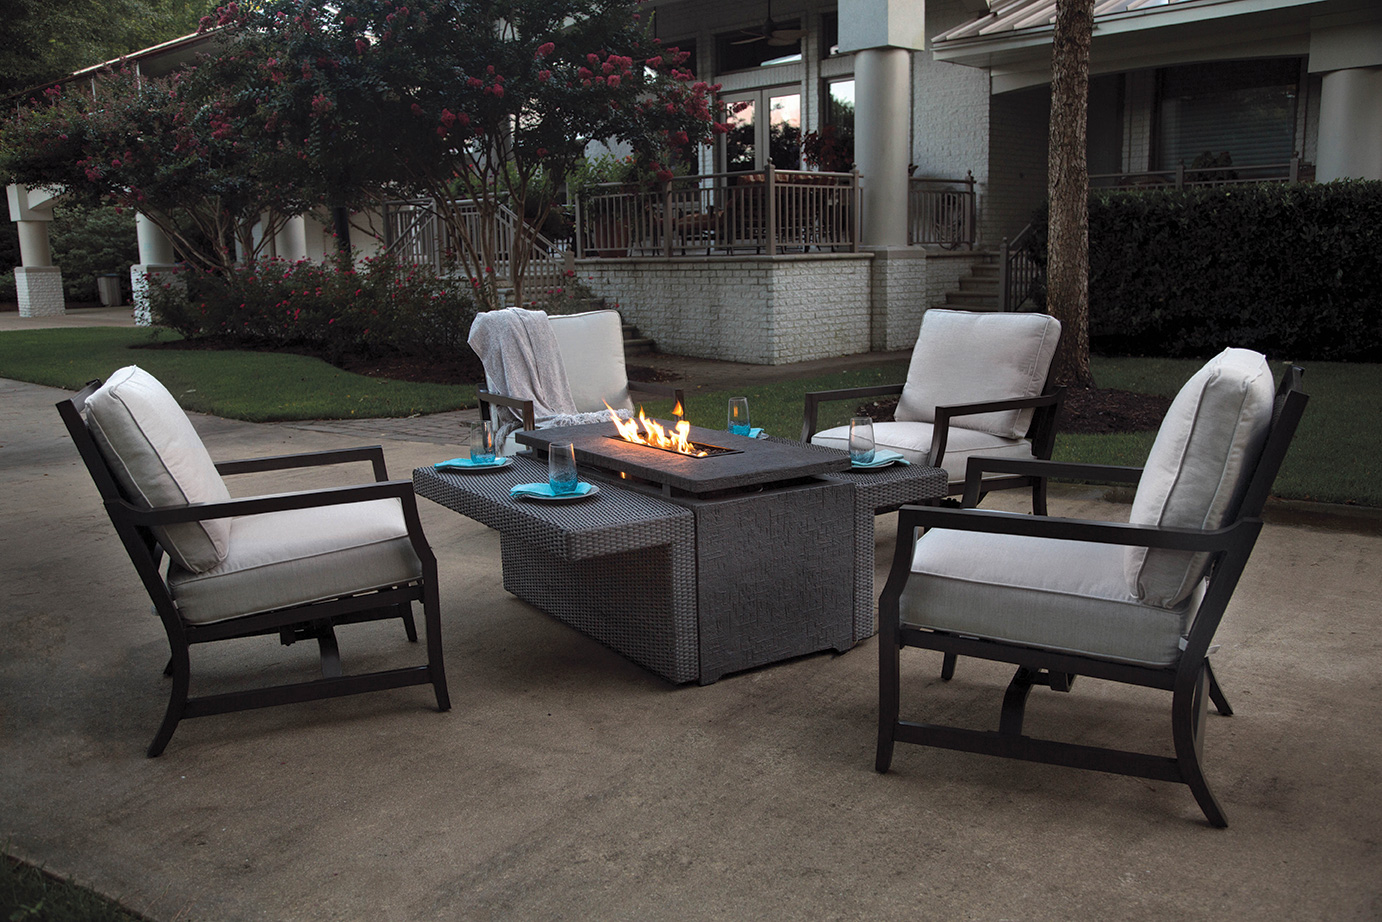 Outdoor furniture blufish designs for Outdoor furniture designers